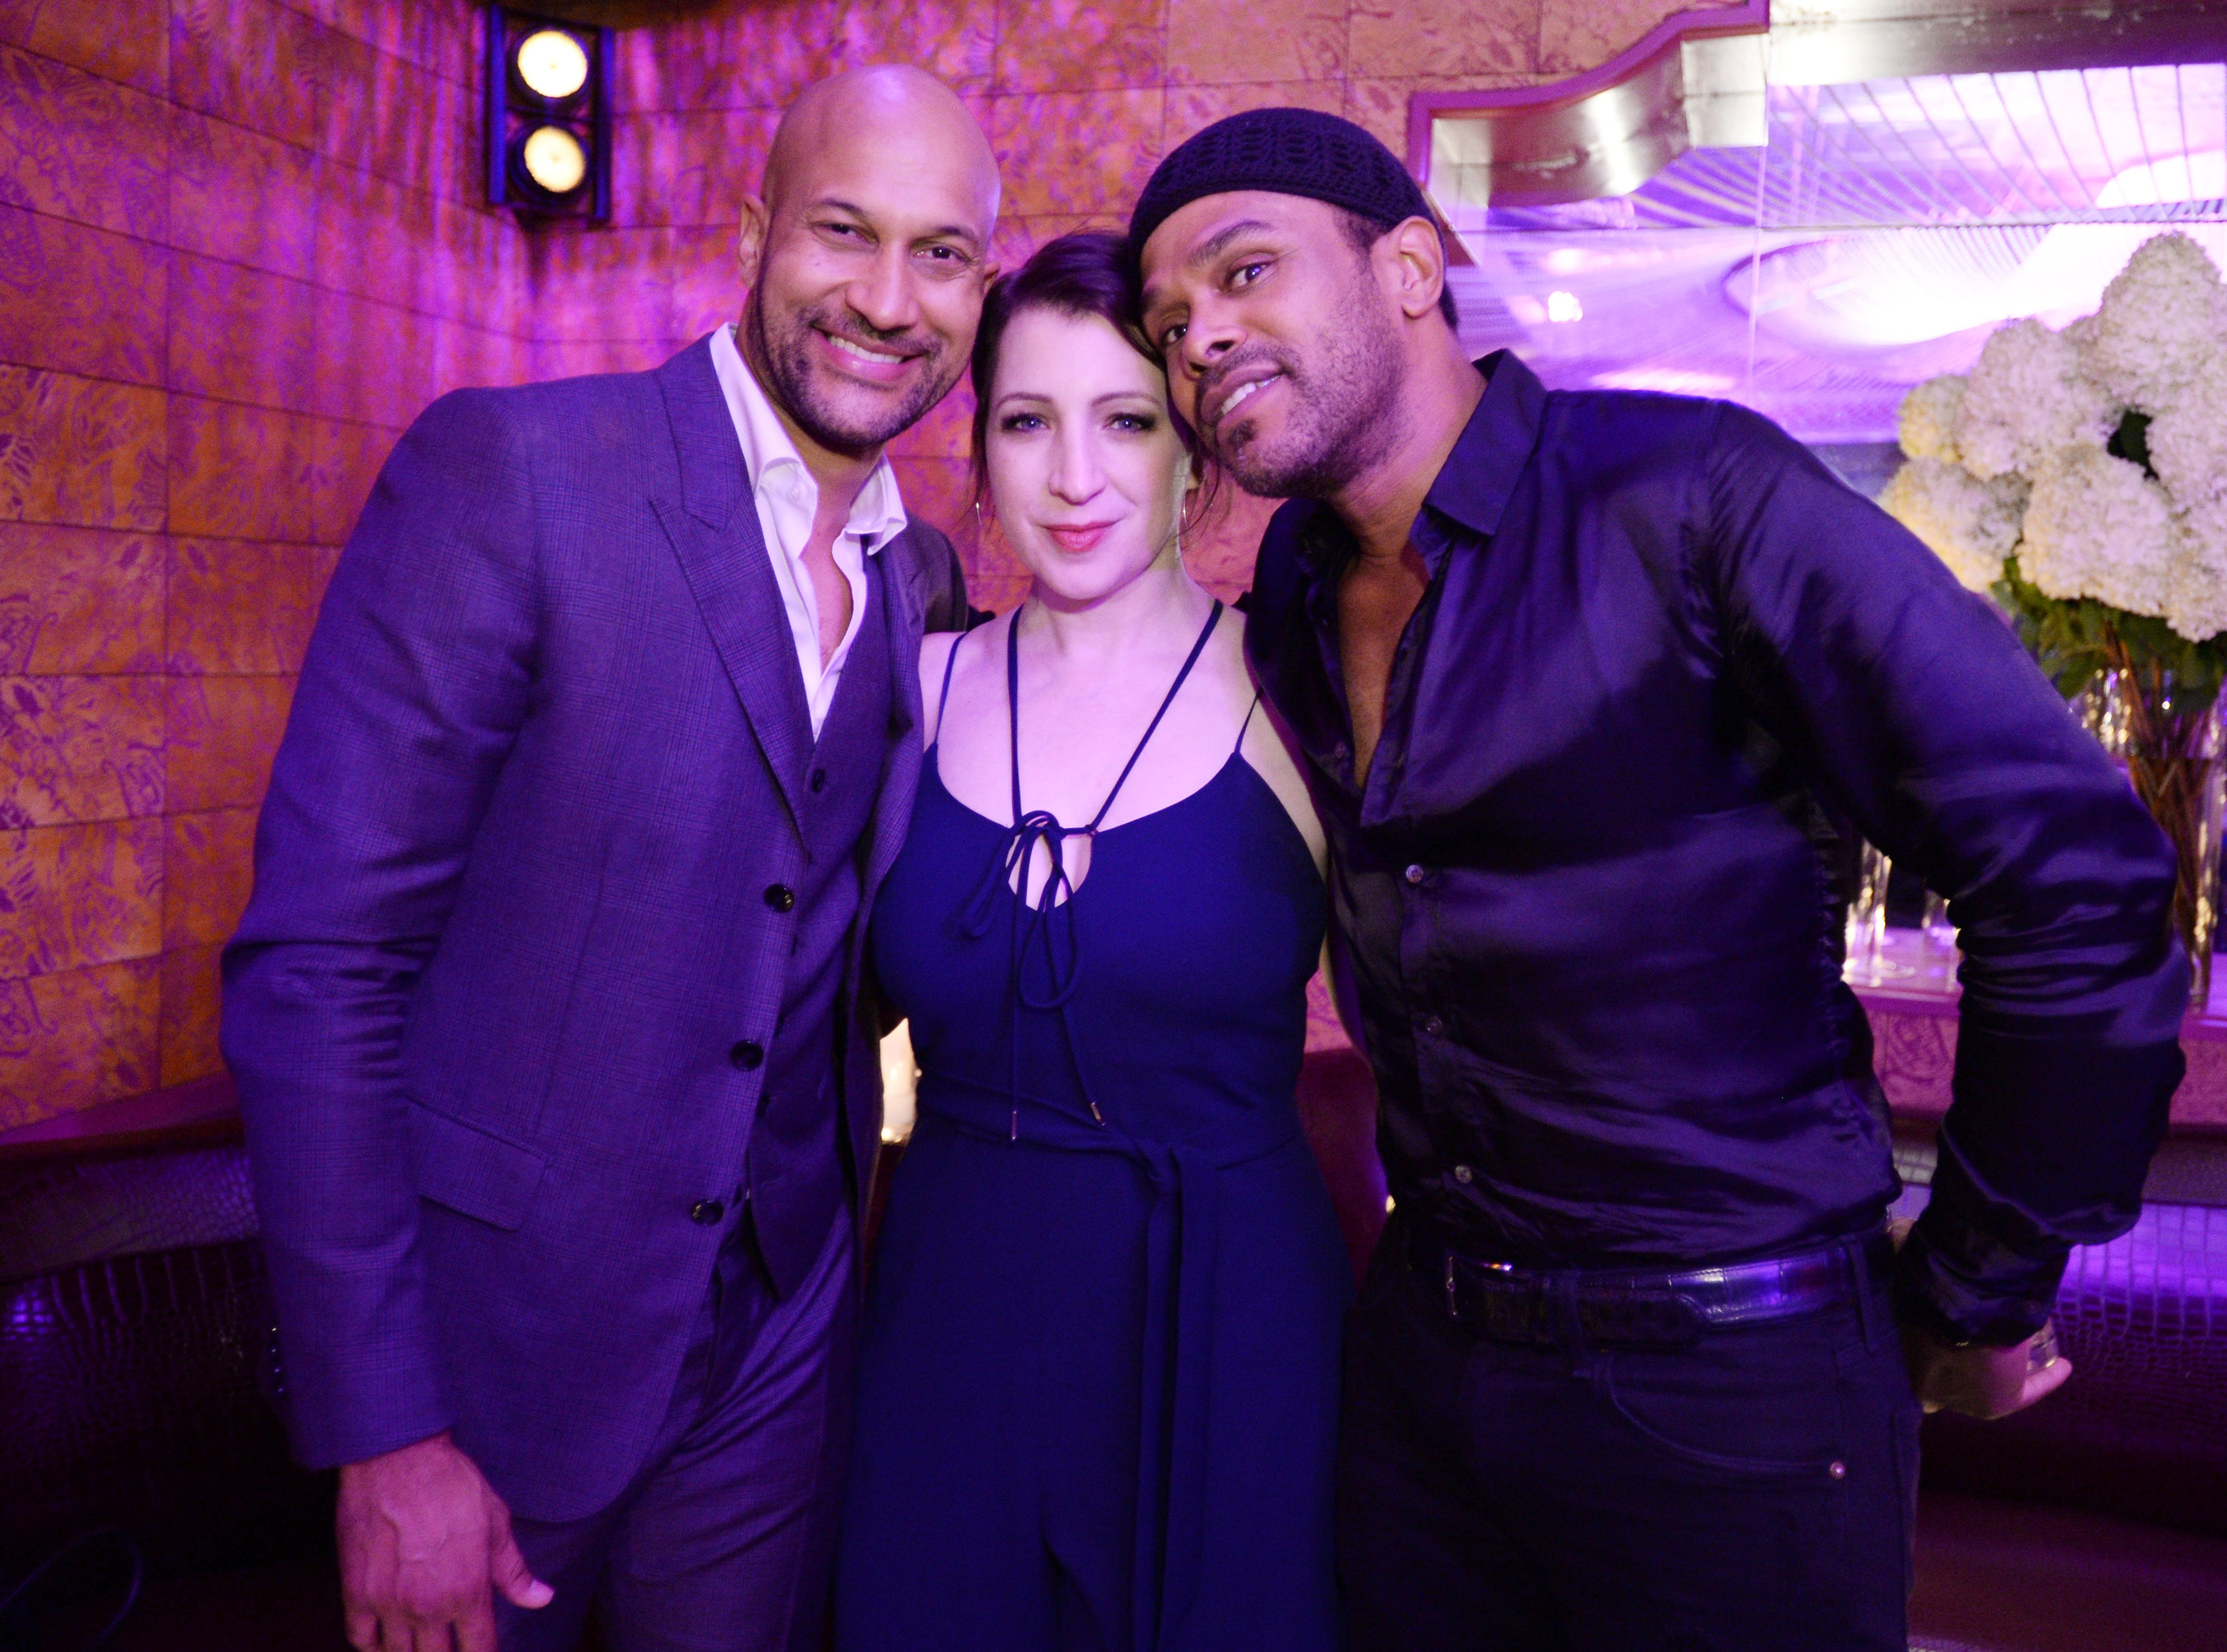 Keegan-Michael Key, Elisa Pugliese and Maxwell all took a photo together.